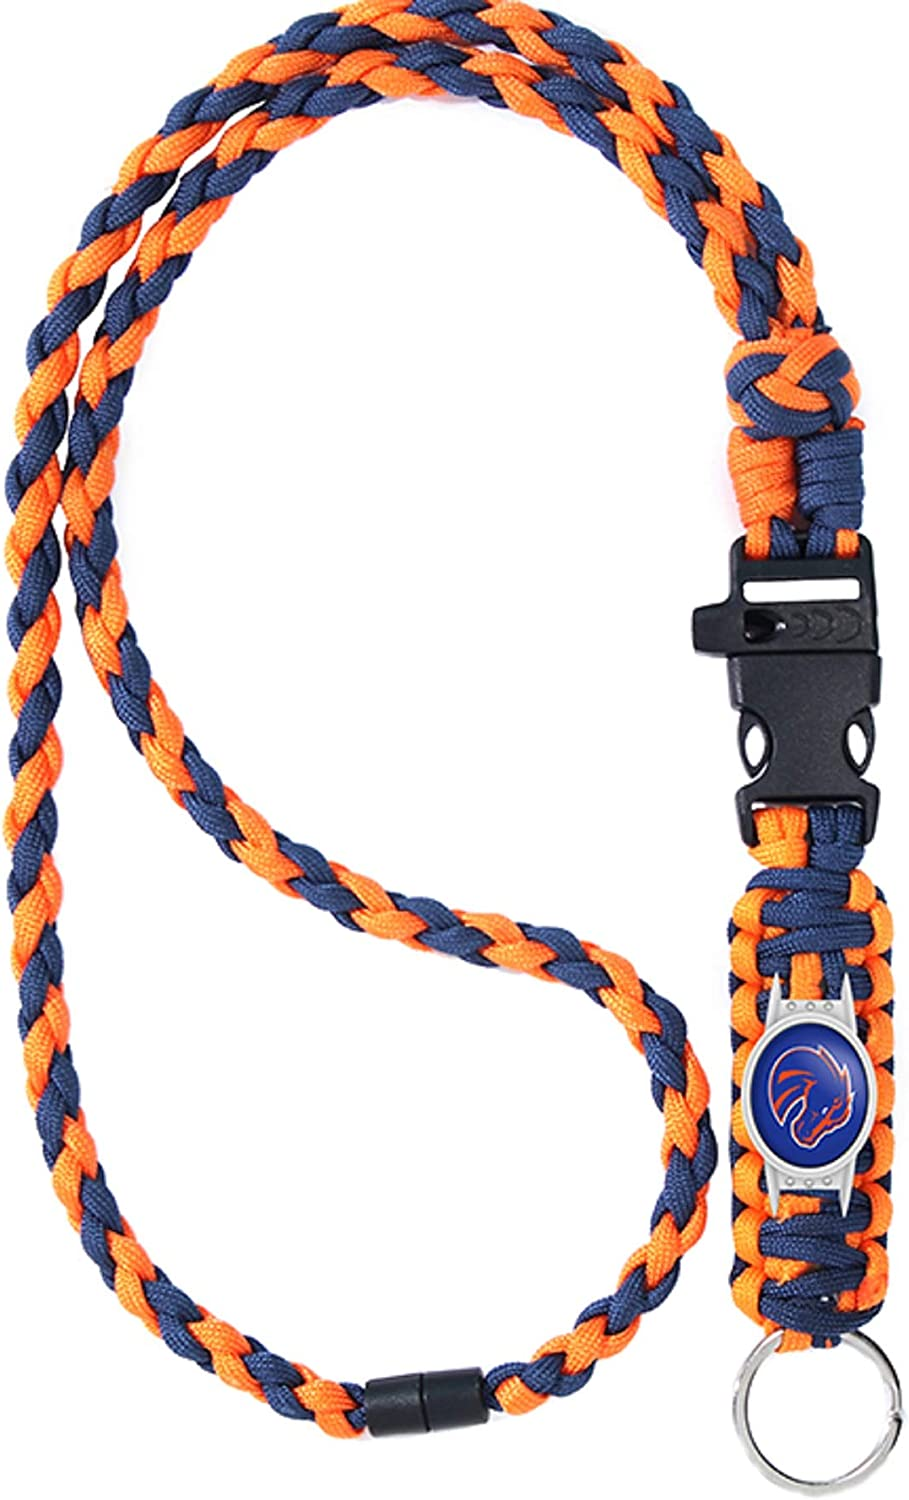 Neck Clasp and Keychain Release/… Swamp Fox Boise State Broncos Paracord Lanyard with Team Charm